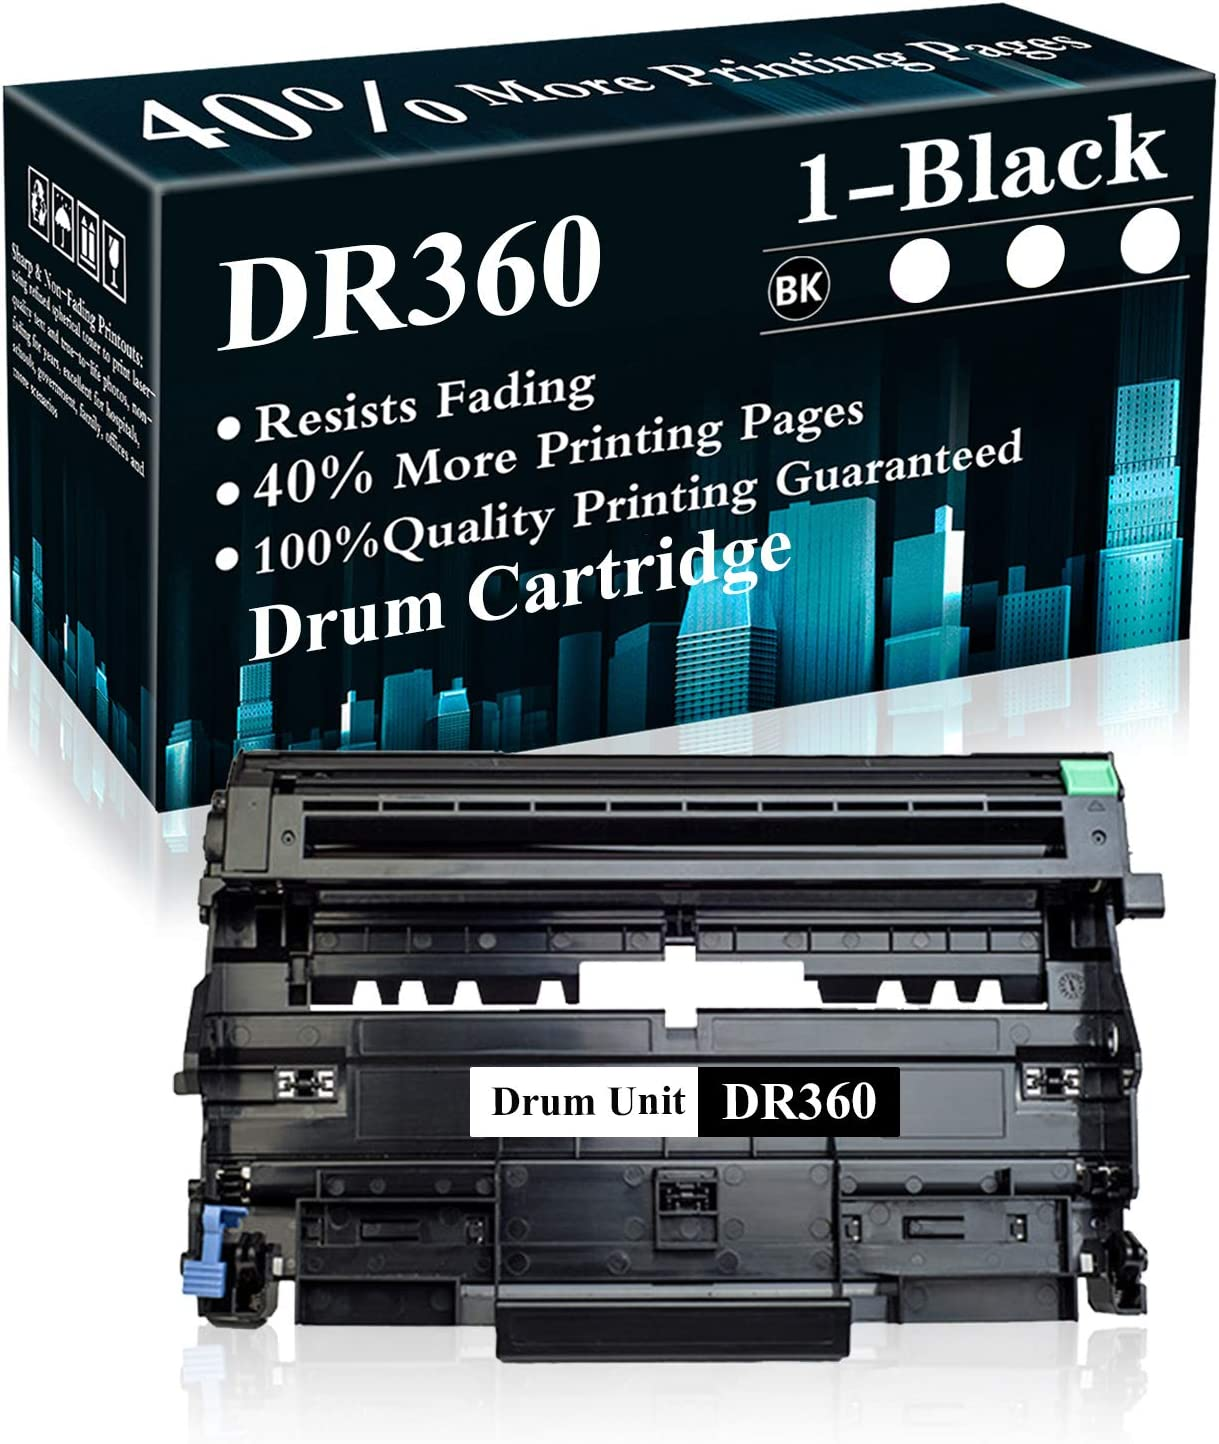 1 Pack DR360 Black Drum Unit 70 DCP-7030 Easy-to-use Brother for Limited Special Price Replacement